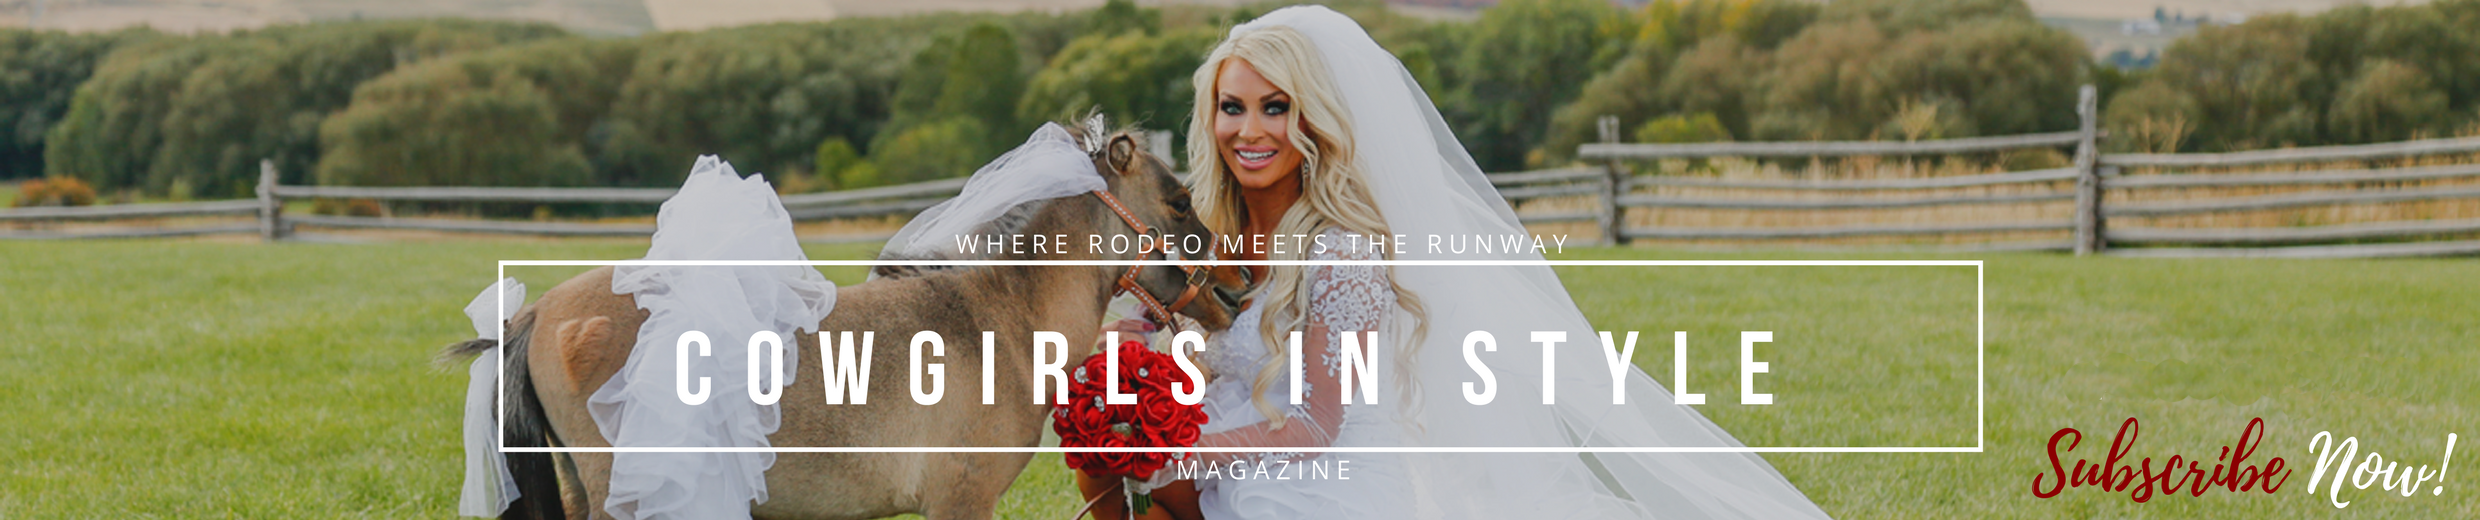 Newsletter - Cowgirls In Style Magazine